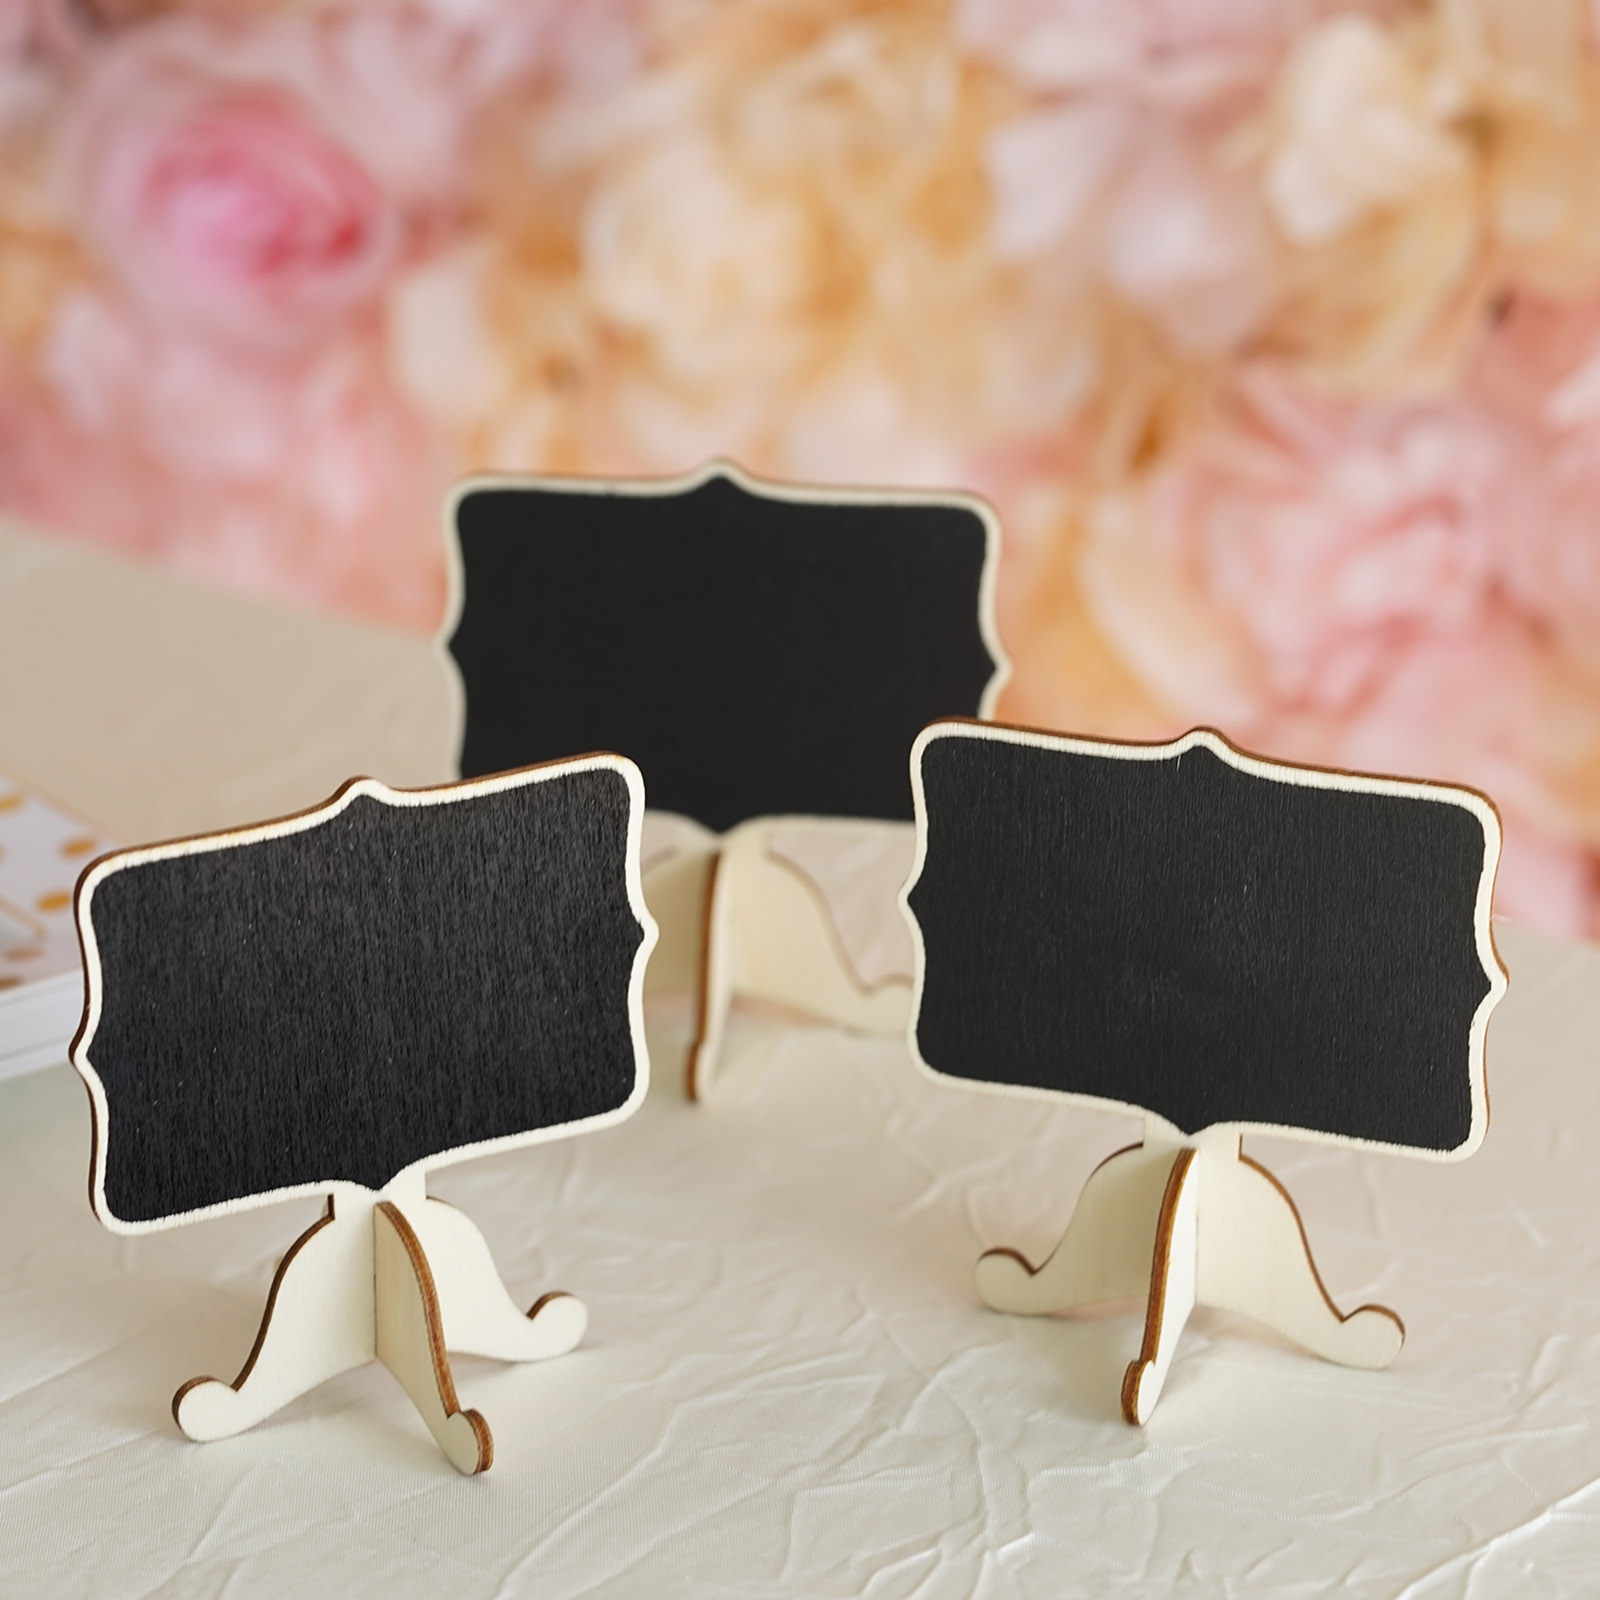 BalsaCircle 10 pcs Black Wood Chalkboards with Removable Stands Wedding Favors Party Event Home Decorations... by